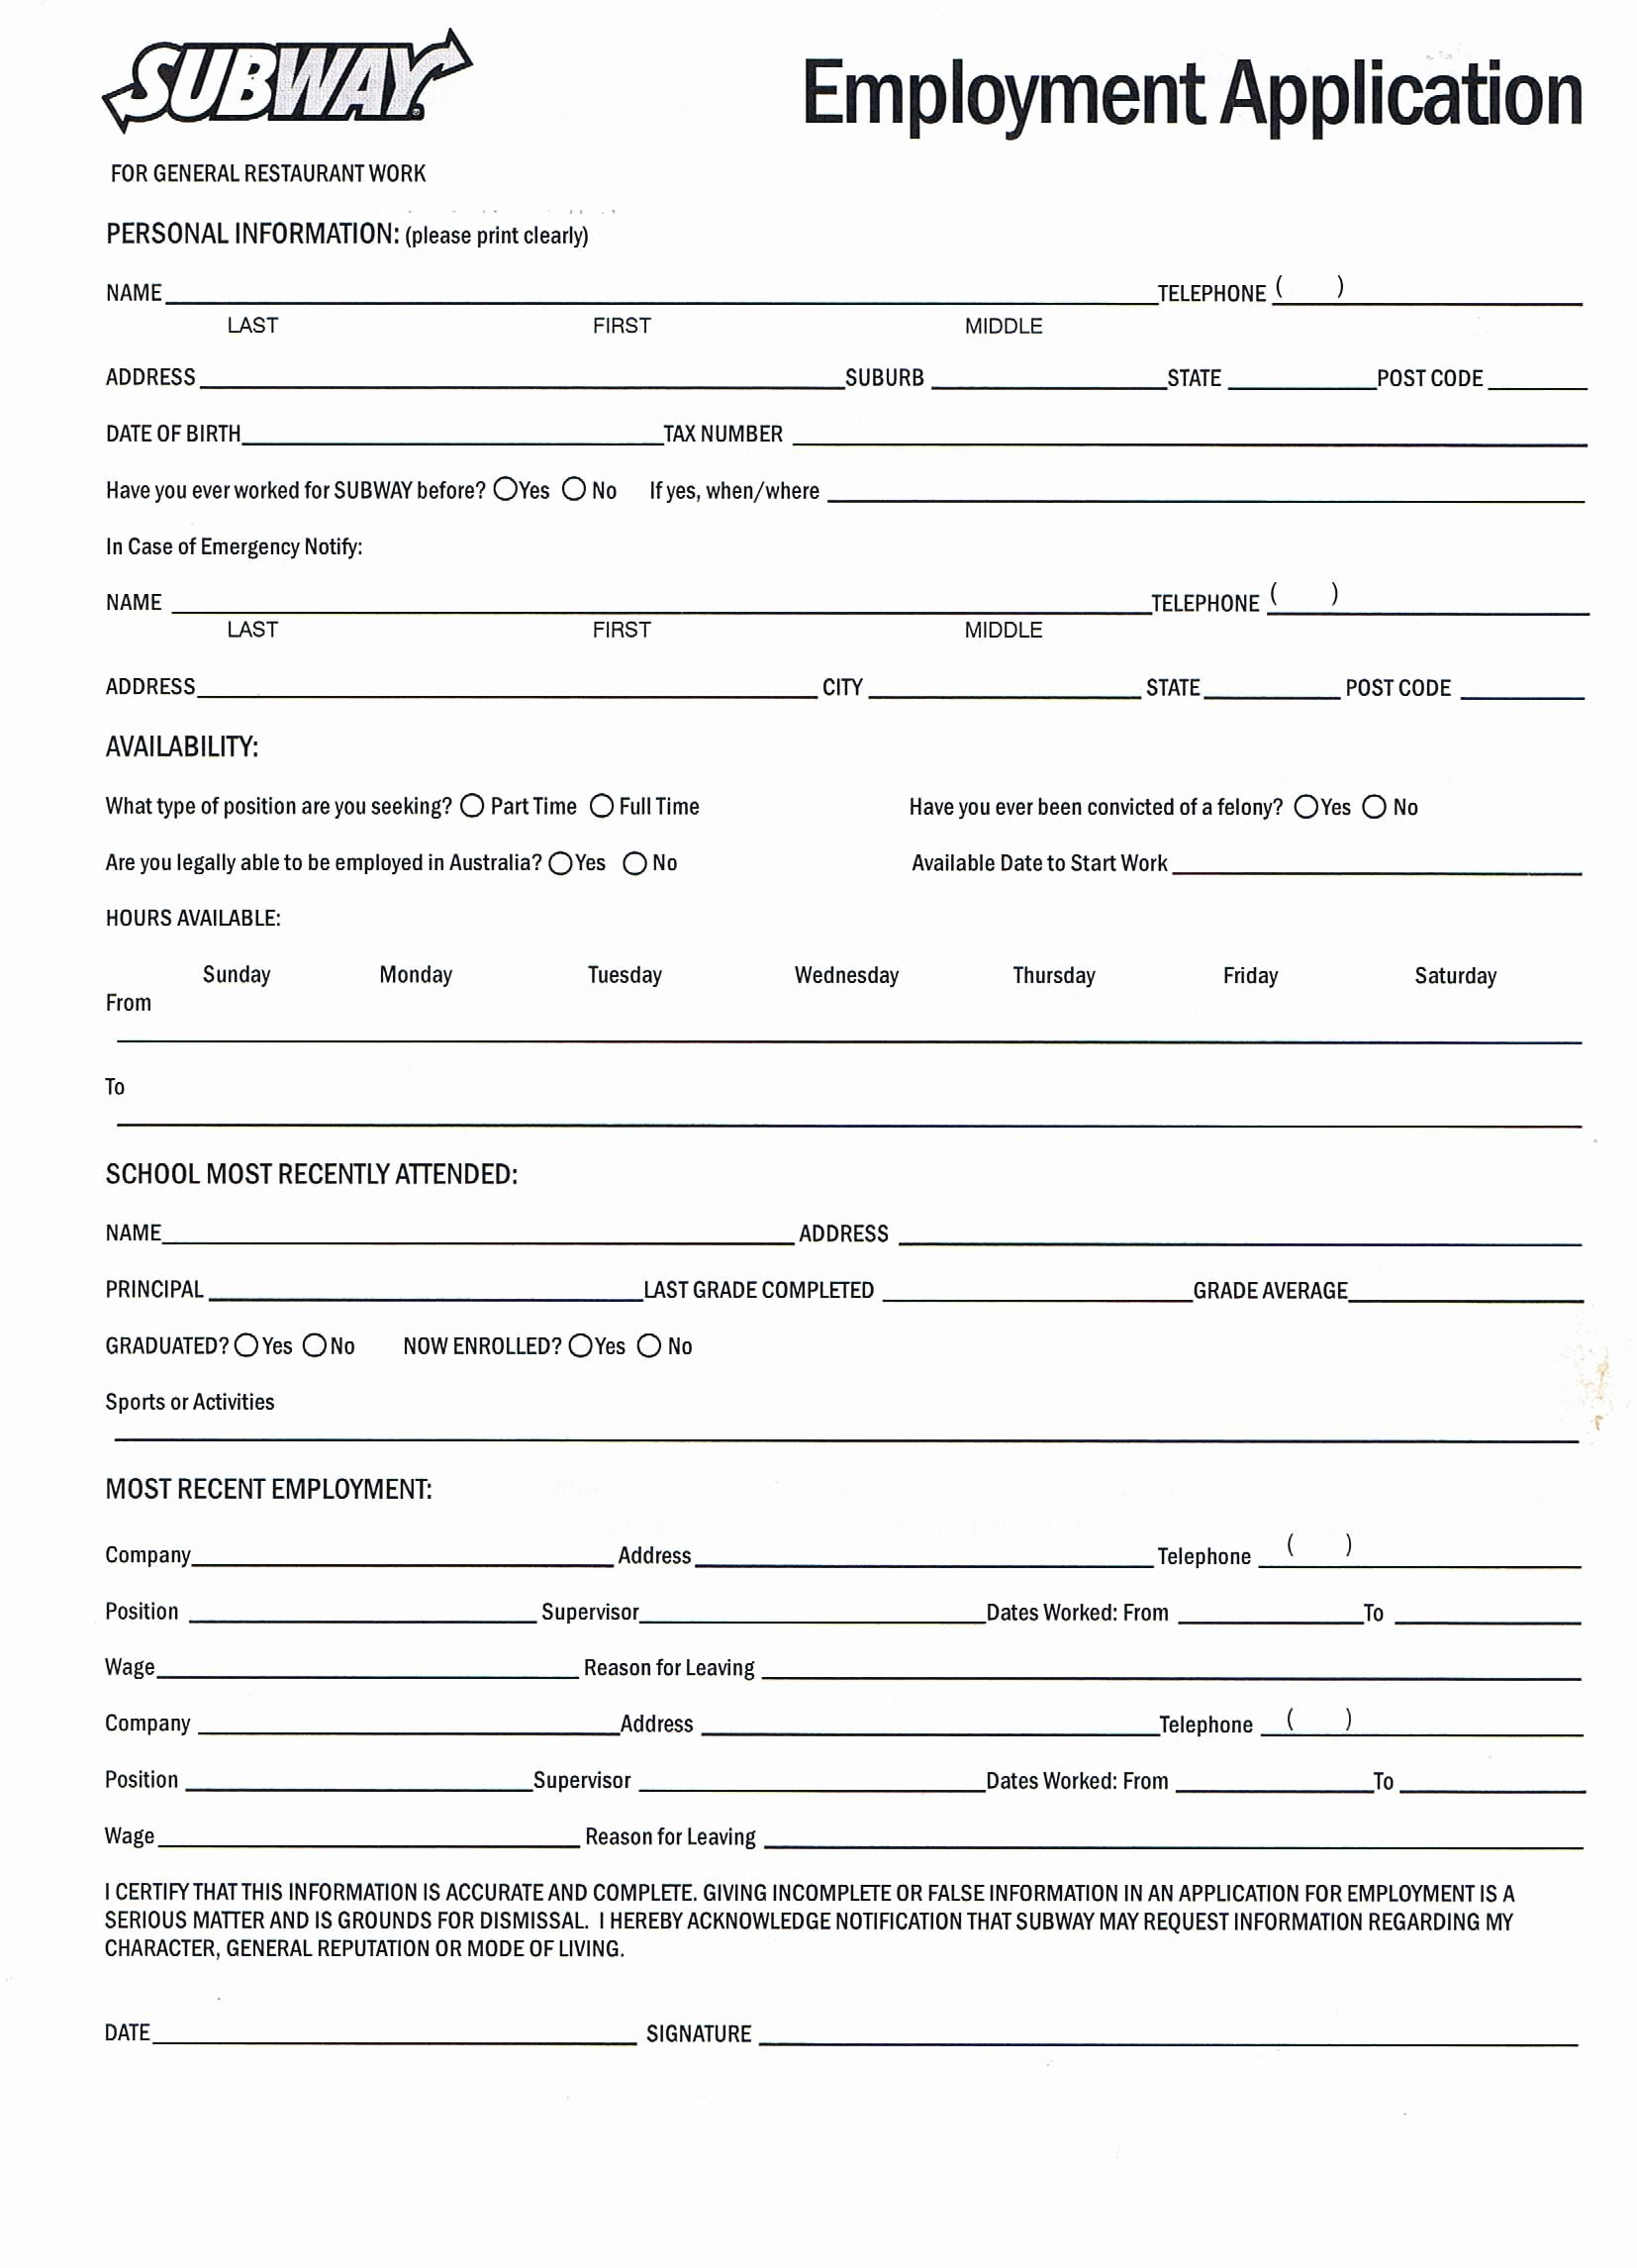 Free Employment Application form Download Inspirational Printable Job Application forms Online forms Download and